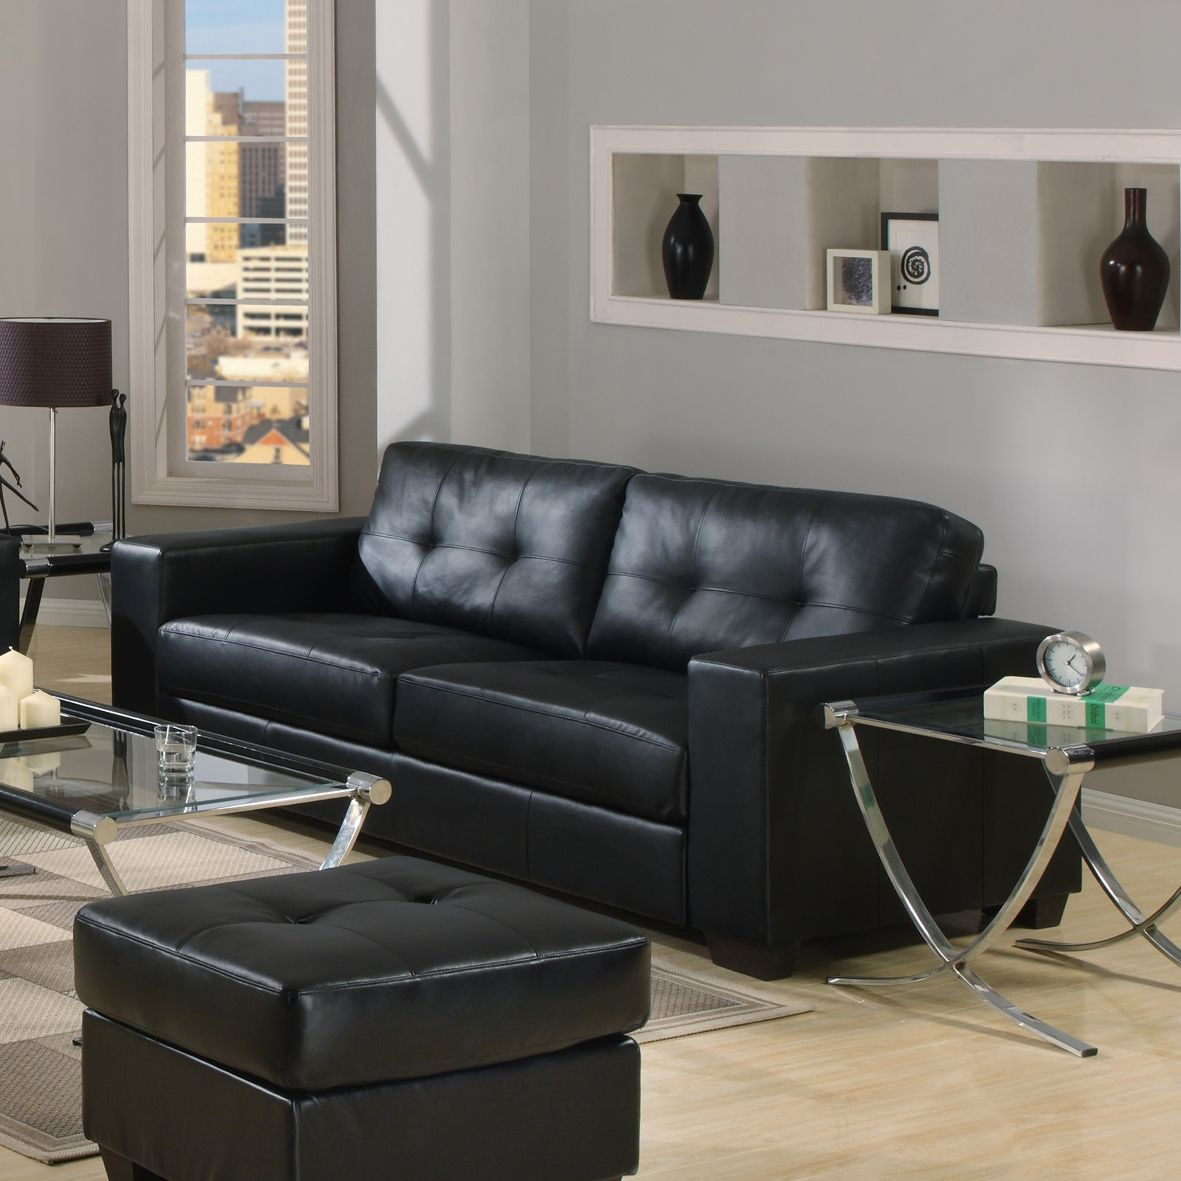 modern minimalist living room interior glass top table on best color to paint living room walls id=53275